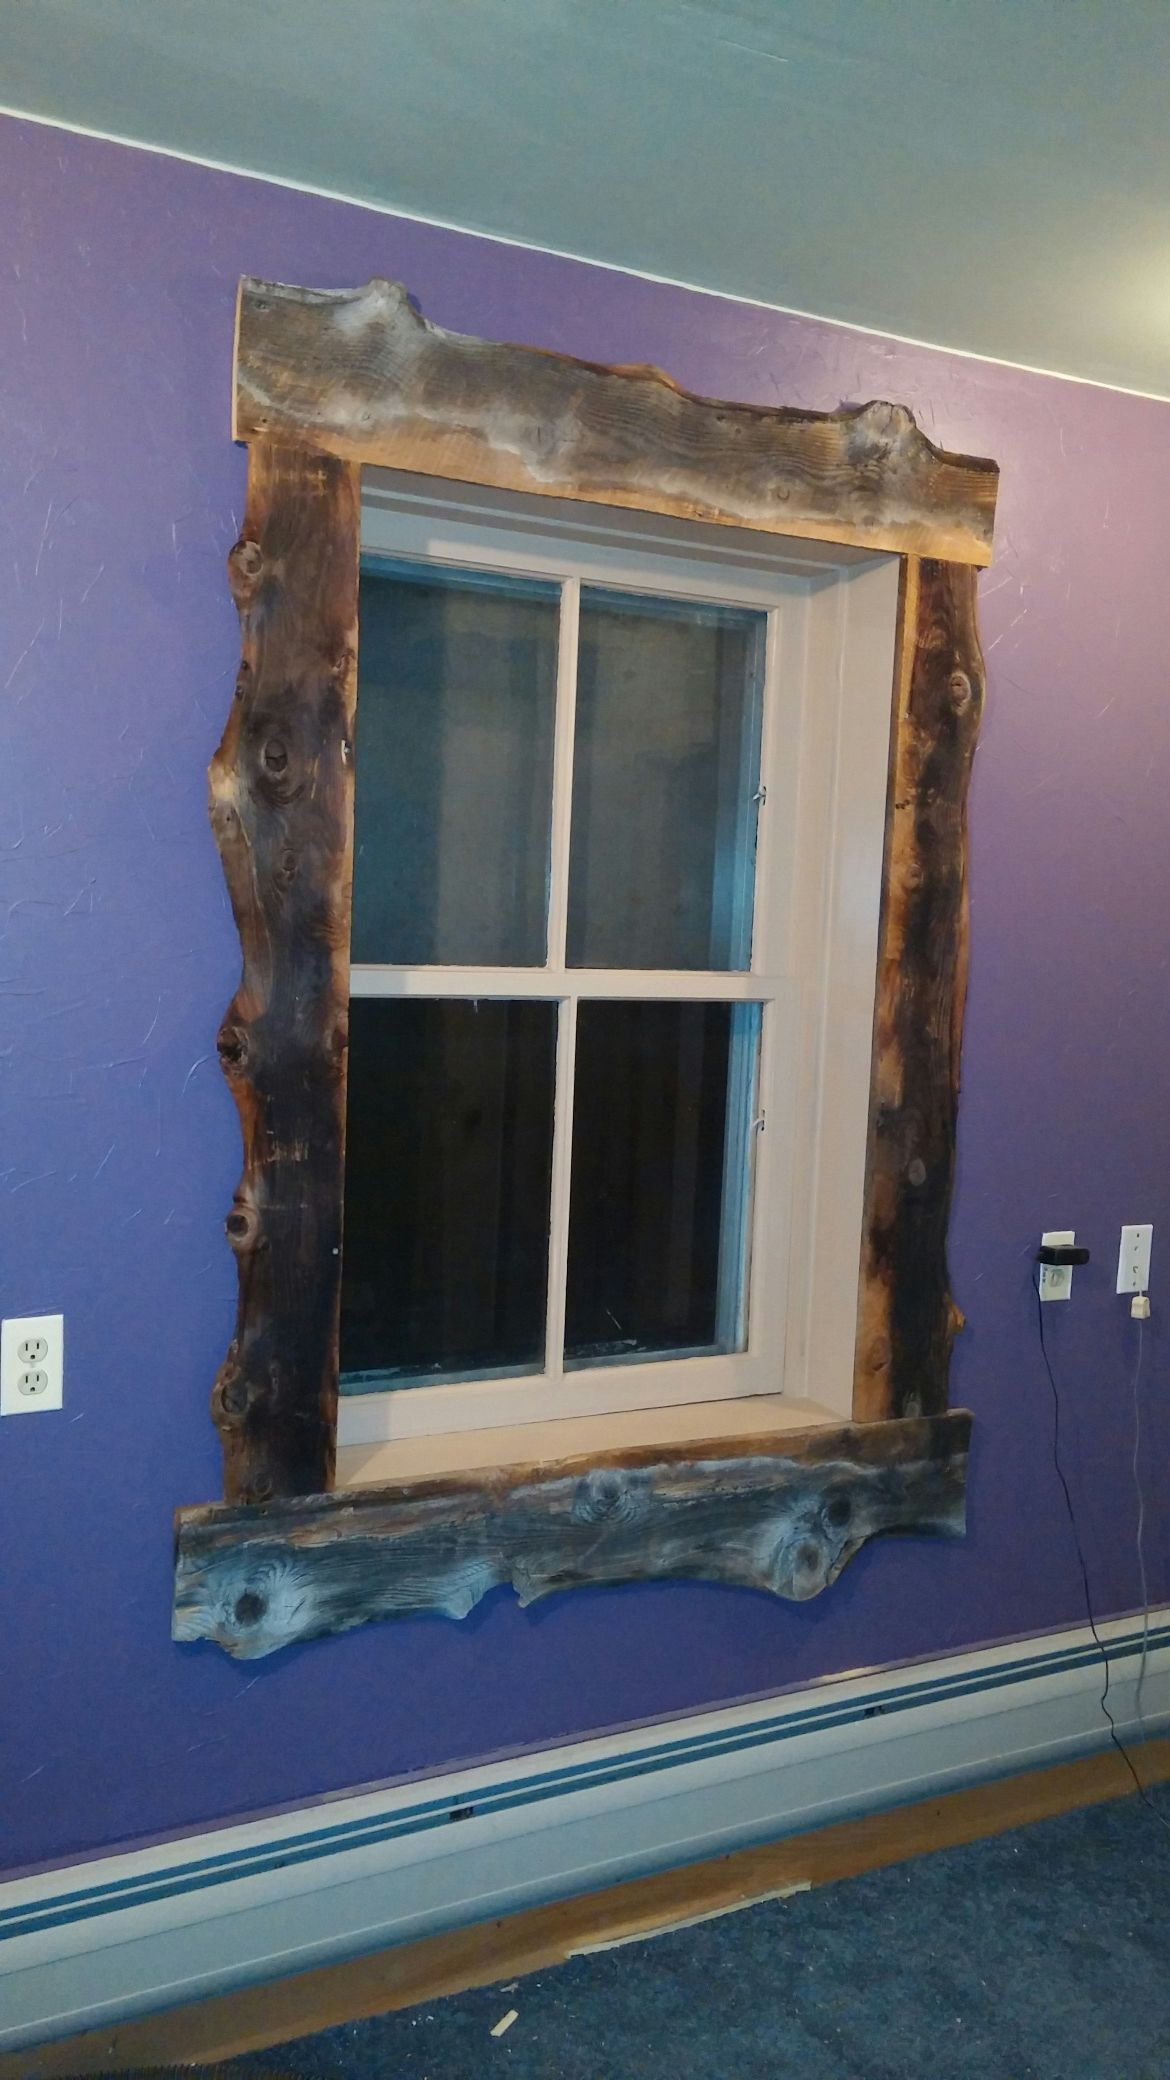 Trimmed Out The Window With Old Slab Barnwood. Lookin regarding Old Rustic Barn Window Frame (Image 26 of 30)